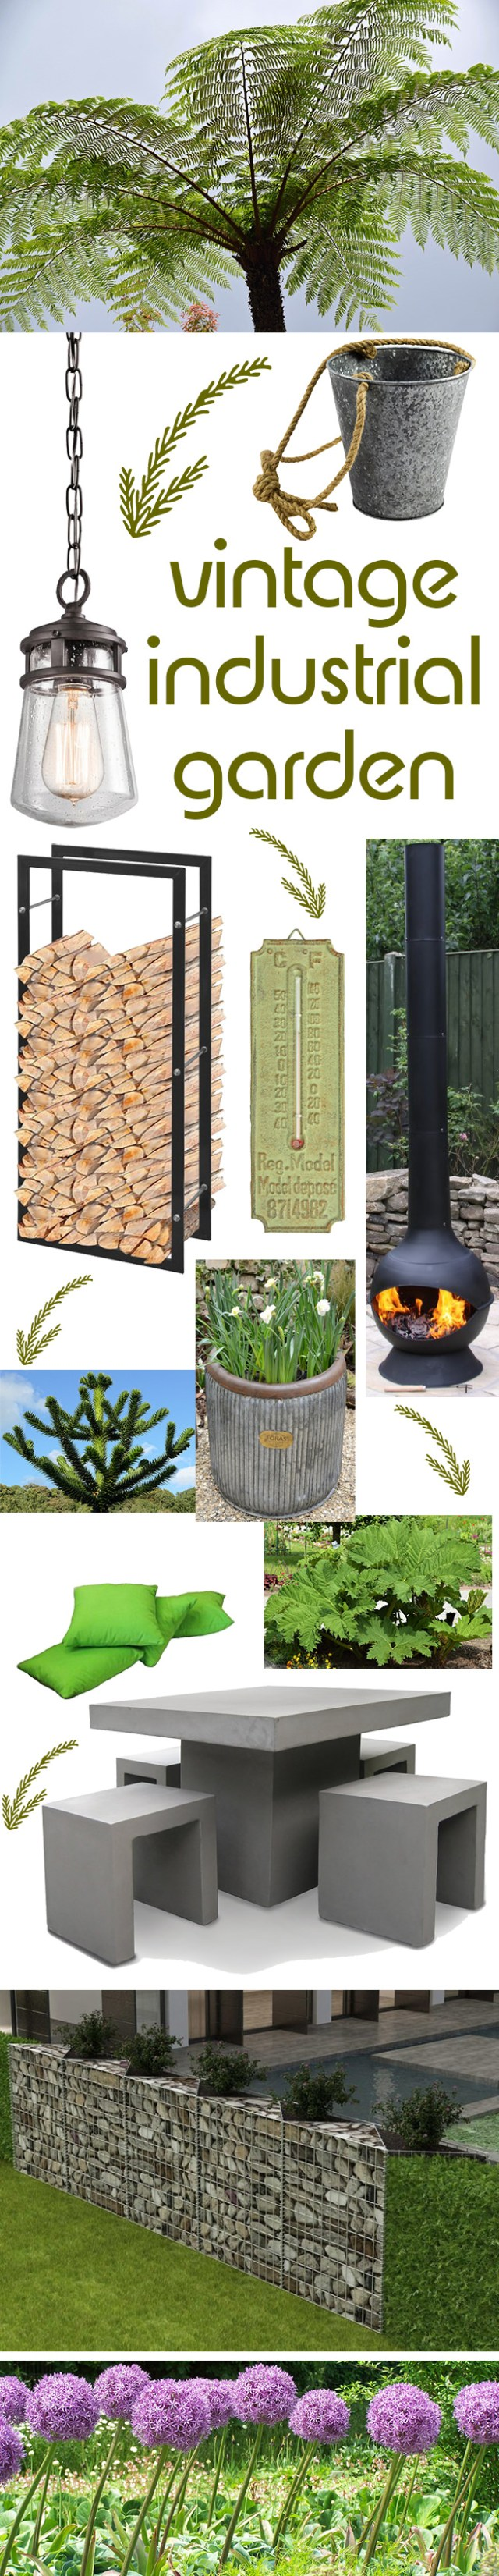 Vintage industrial garden mood board in collaboration with Wayfair | H is for Home